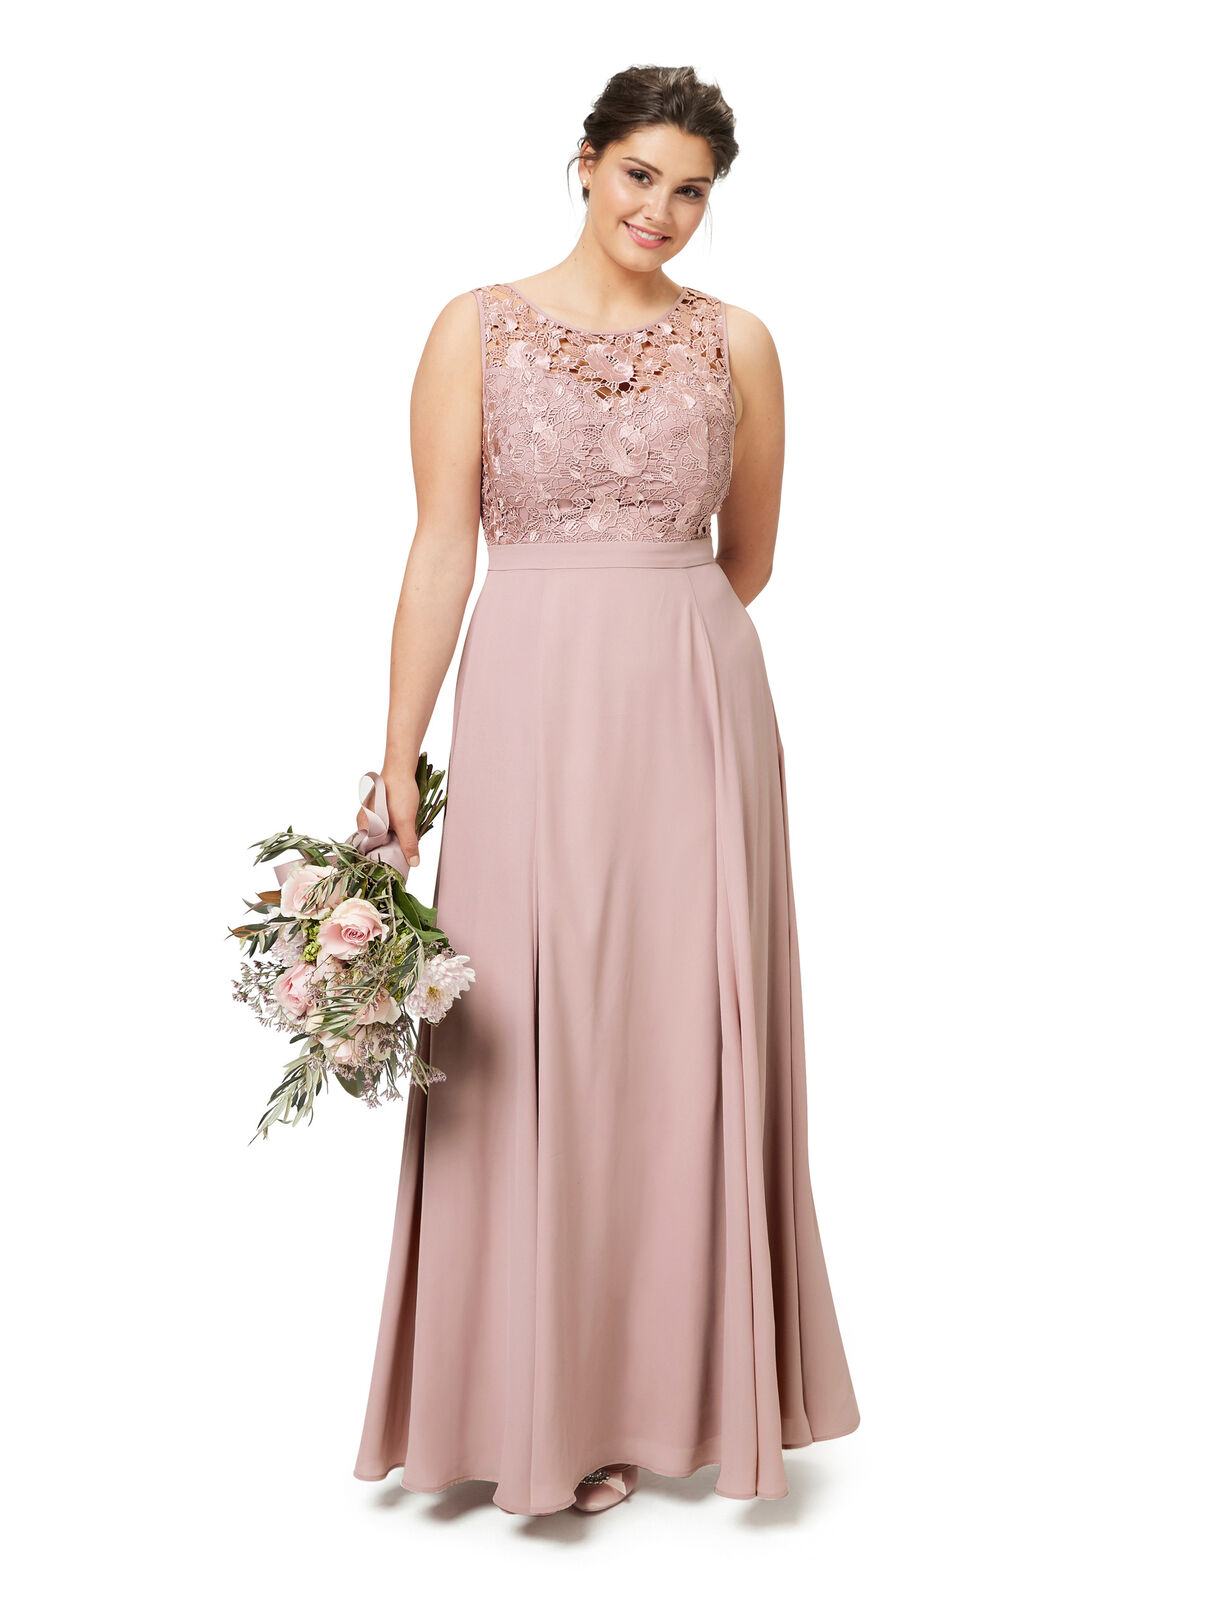 Evermore Maxi Dress | Shop Dresses Online from Review ...